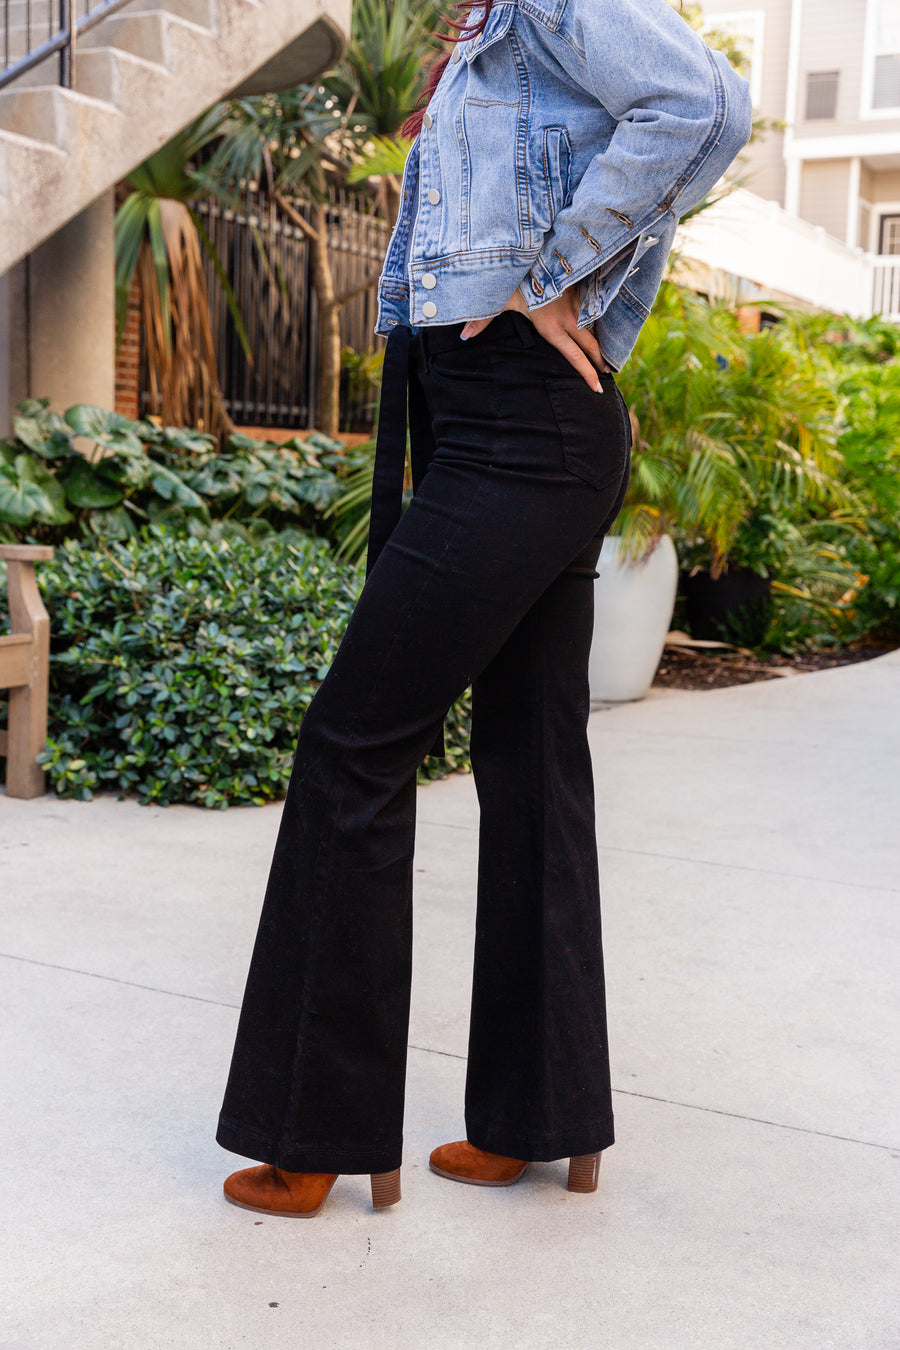 These black pants have a high-rise fitted waist with a zipper fly meeting square side pockets and goes into long flared pant legs with a clean hem.